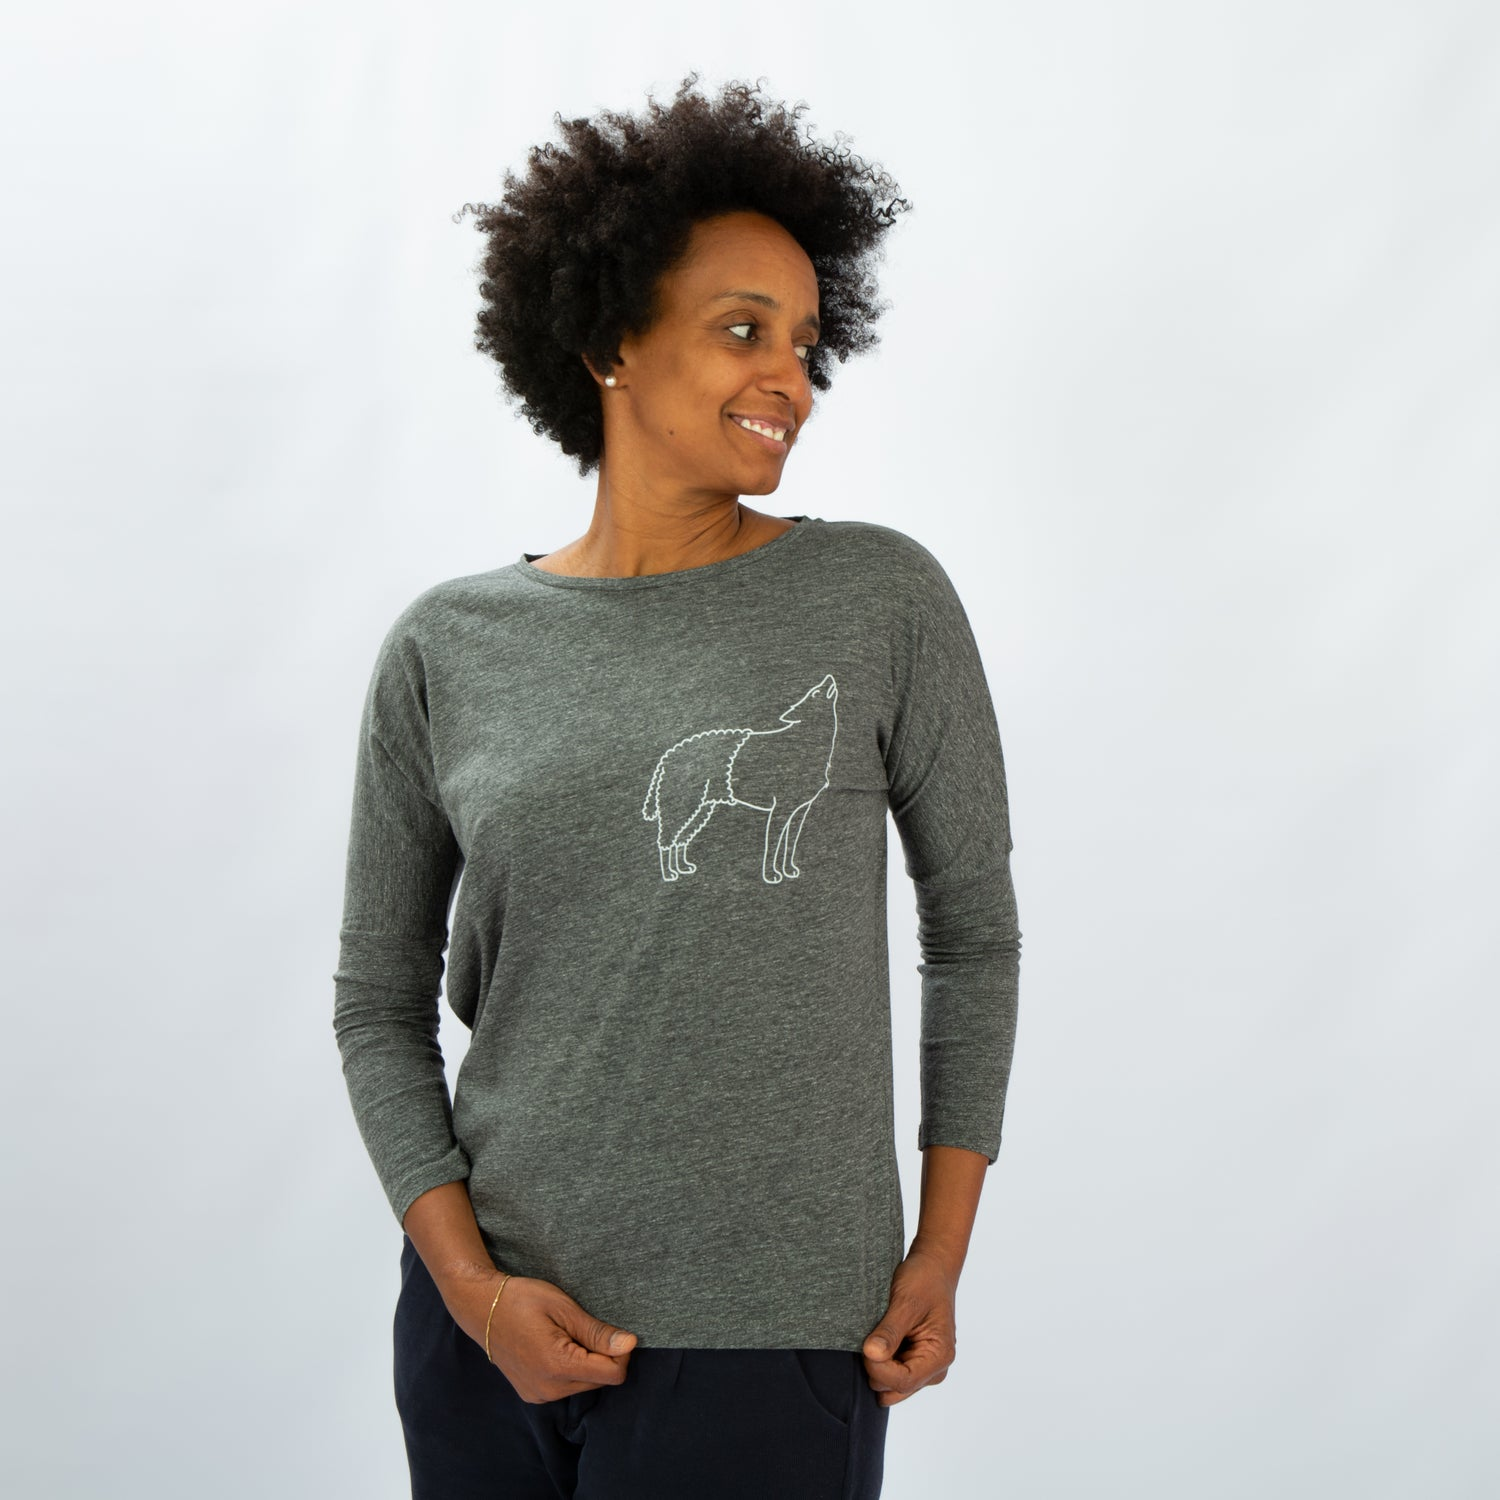 Image of T-SHIRT WOMAN long sleeve WOLFSHEEP grey